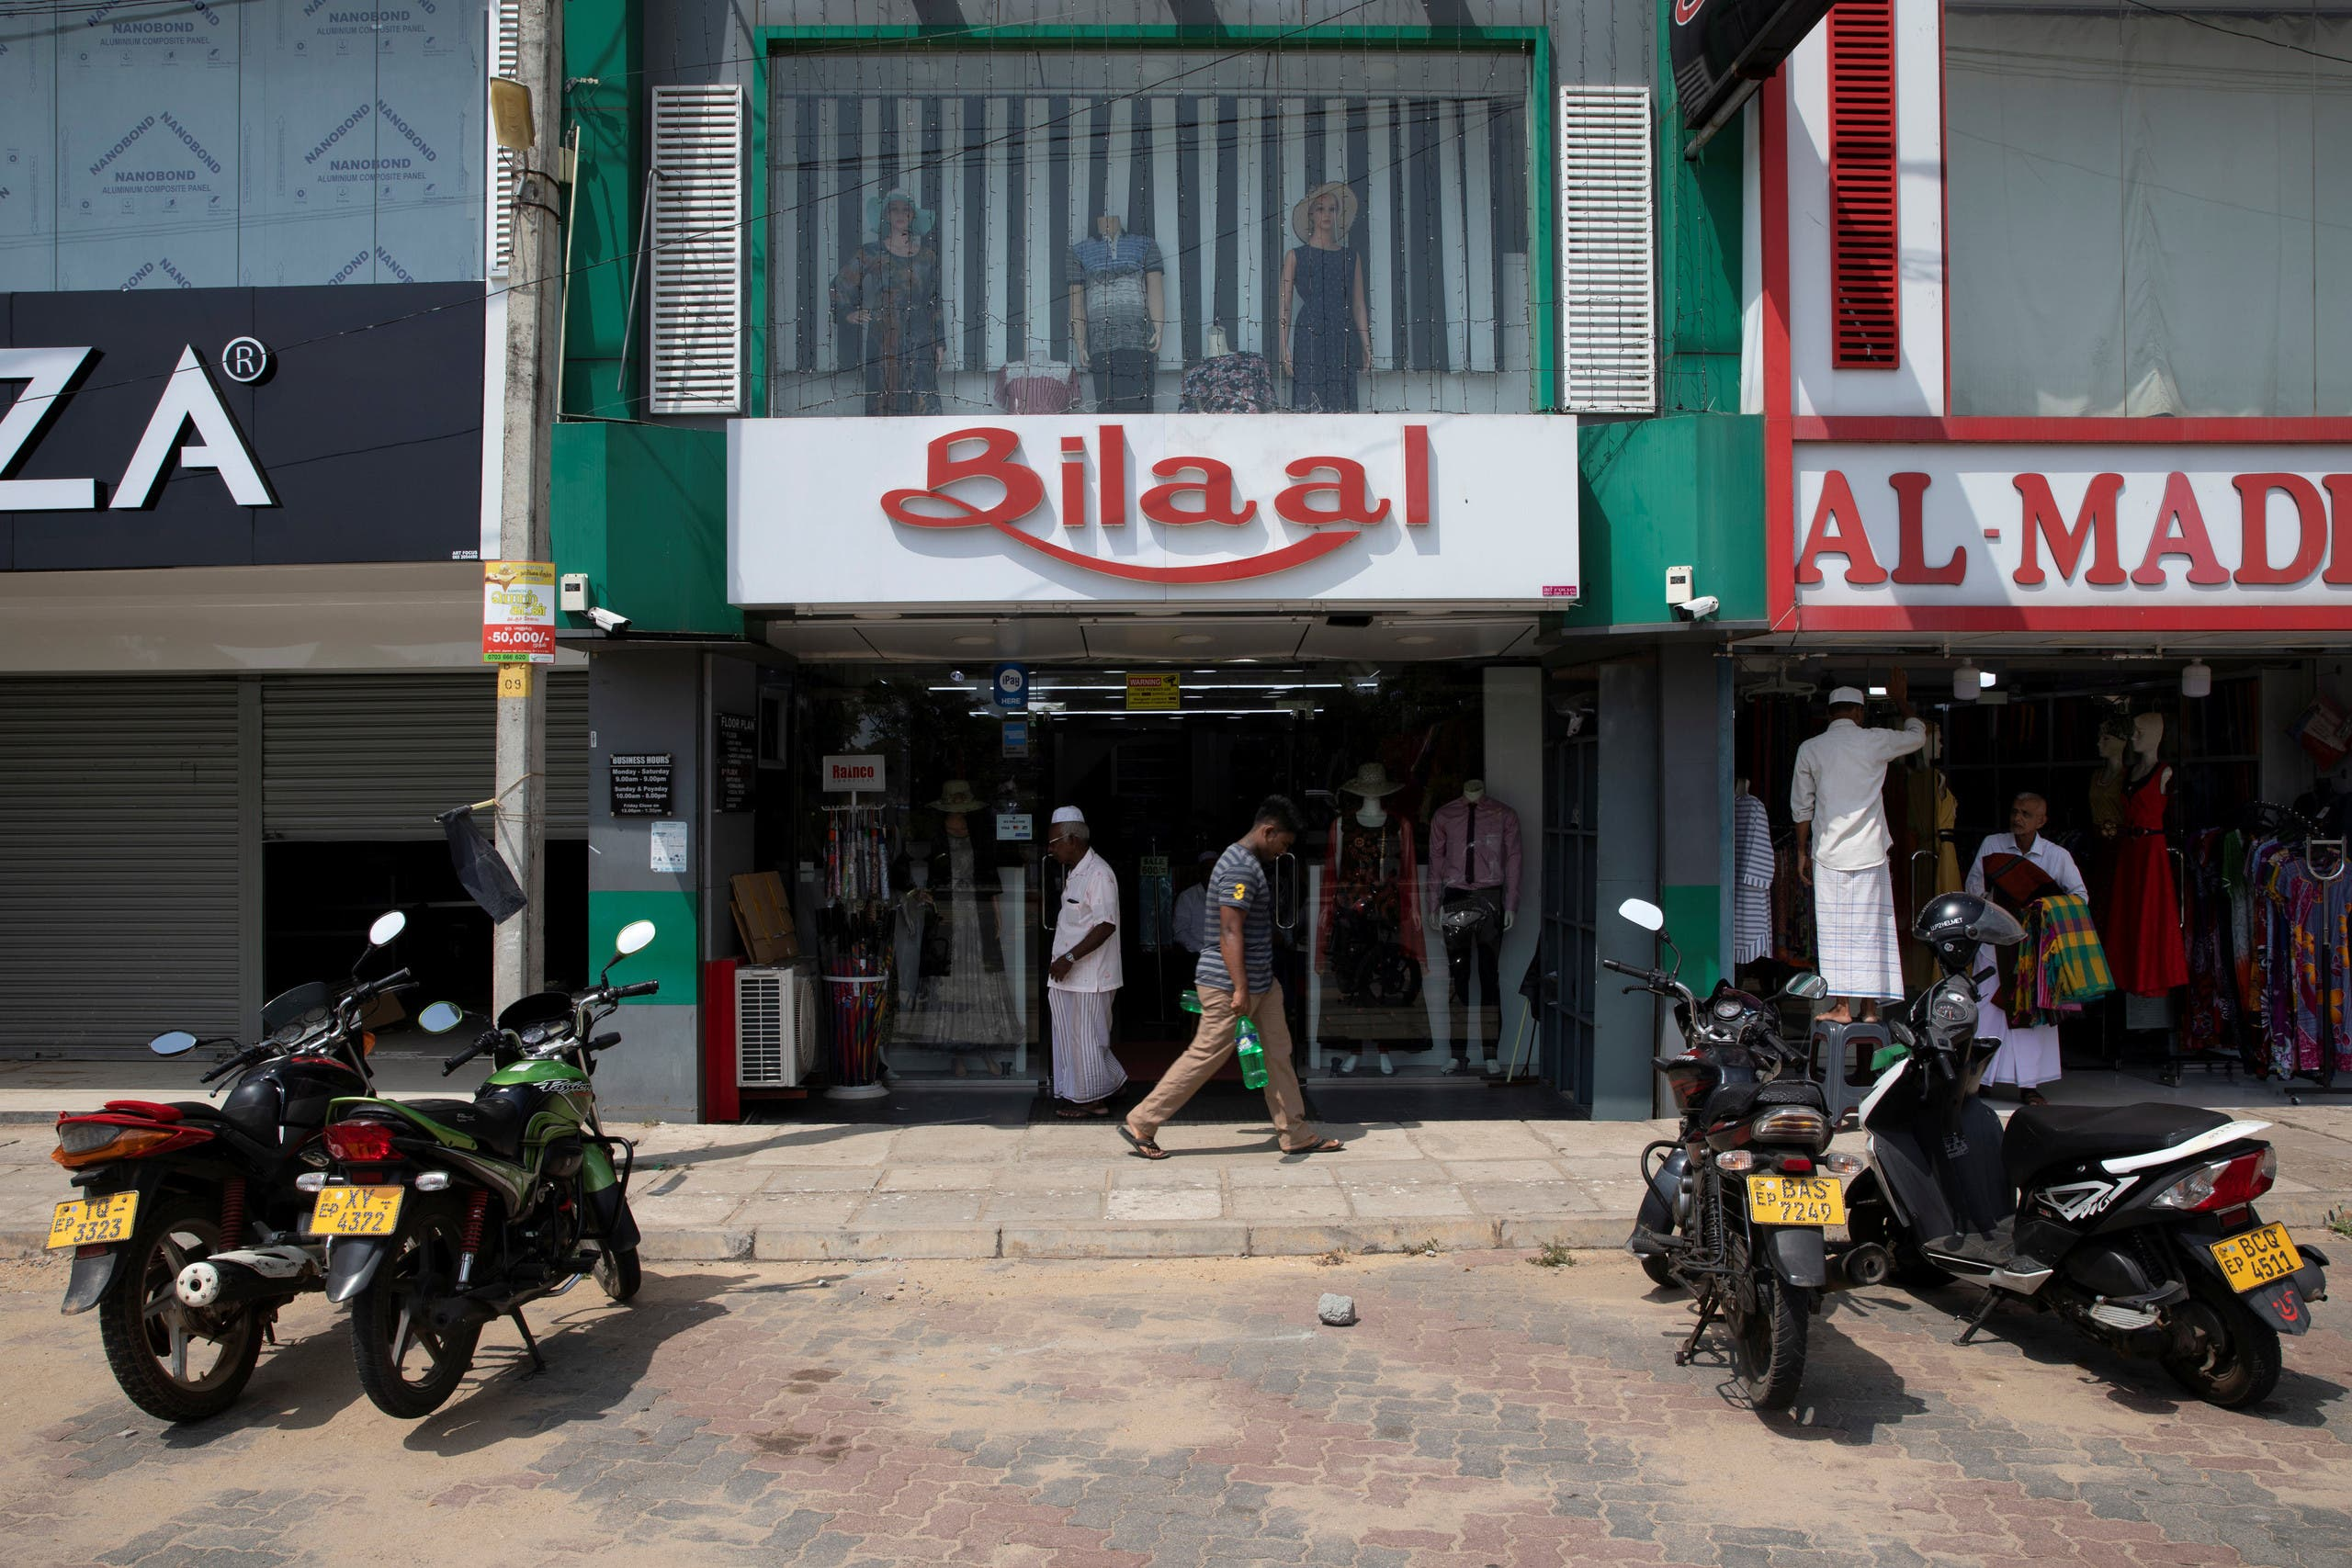 Shops owned by Muslim businessmen are seen in a market in Batticalao, sri lanka (Reuters)